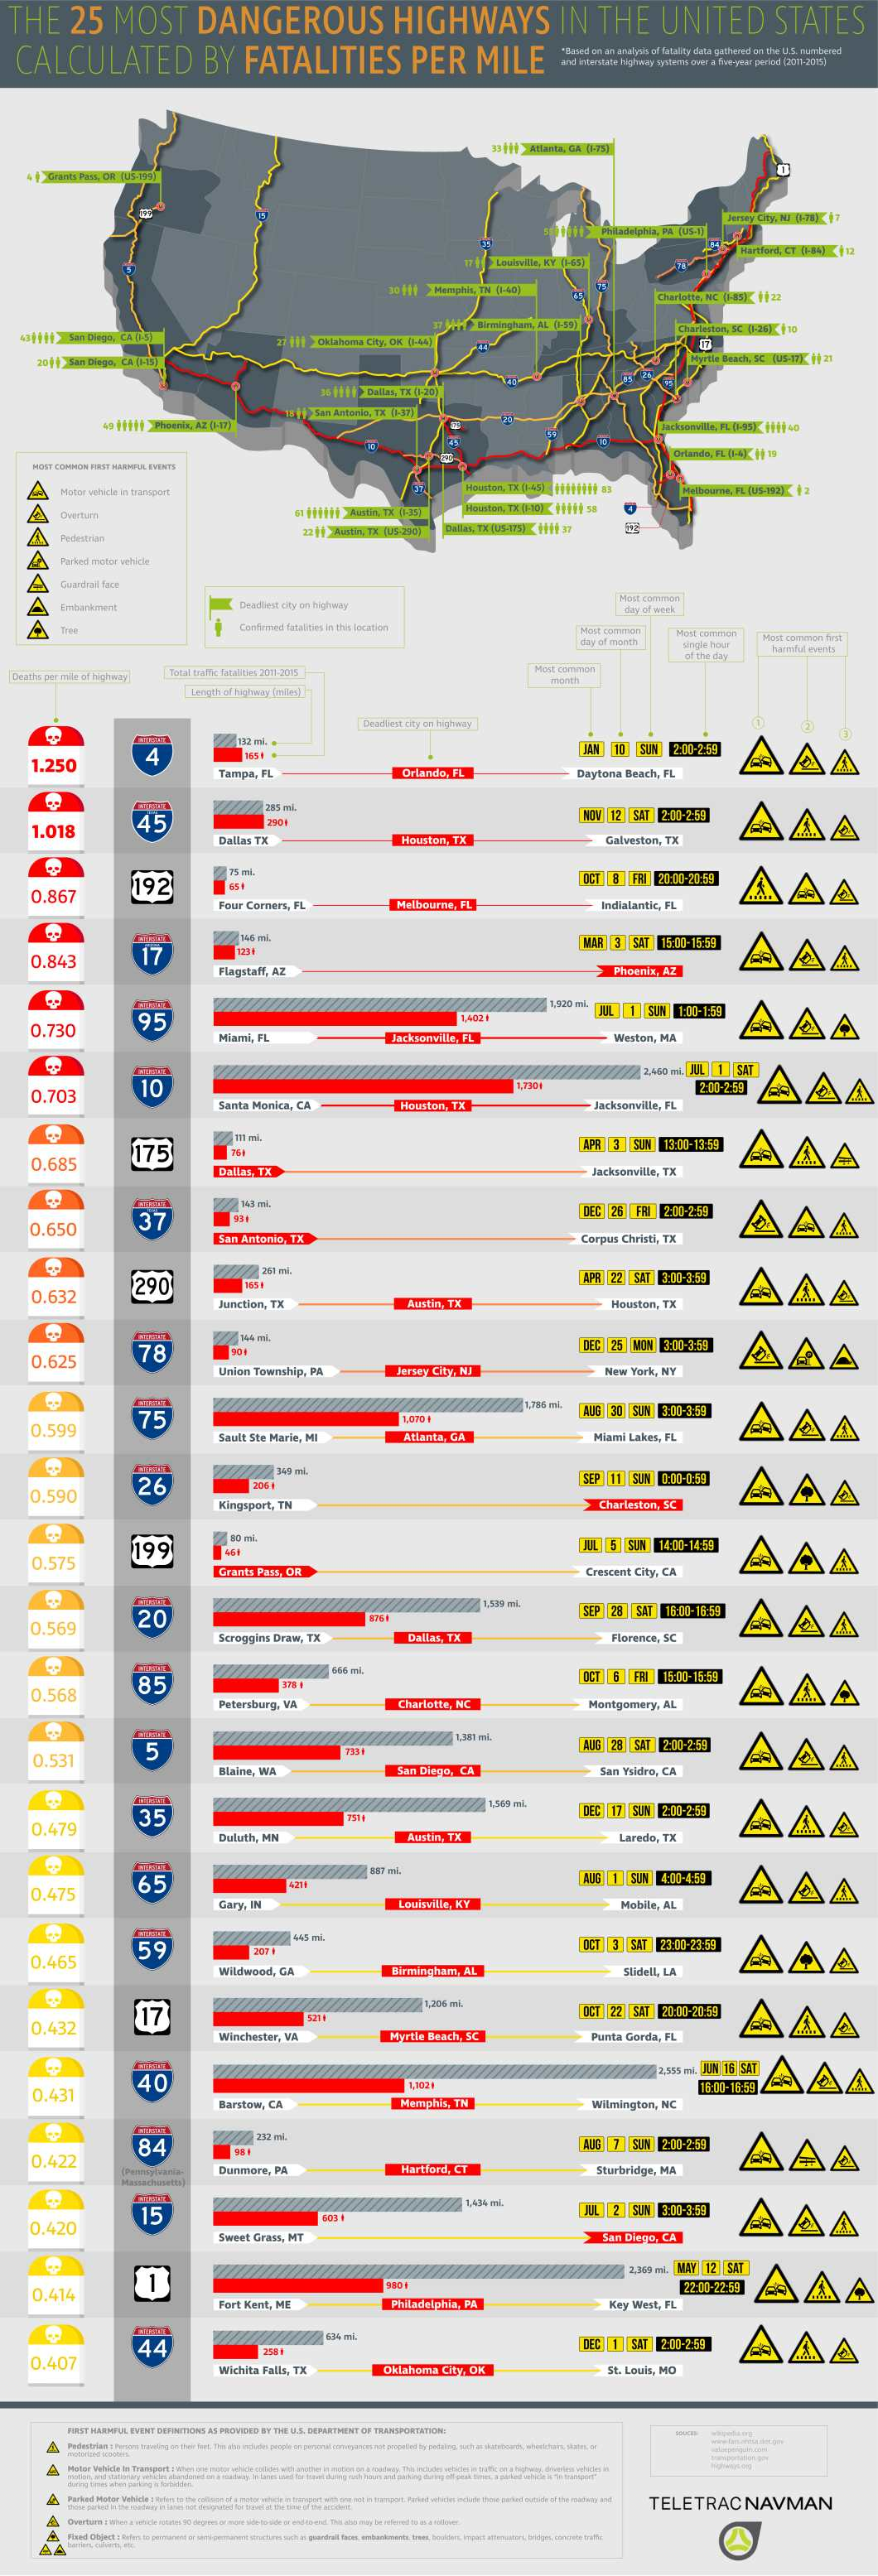 Danger Alert: 25 Deadliest Highways in America with the Highest Fatality Count - Infographic